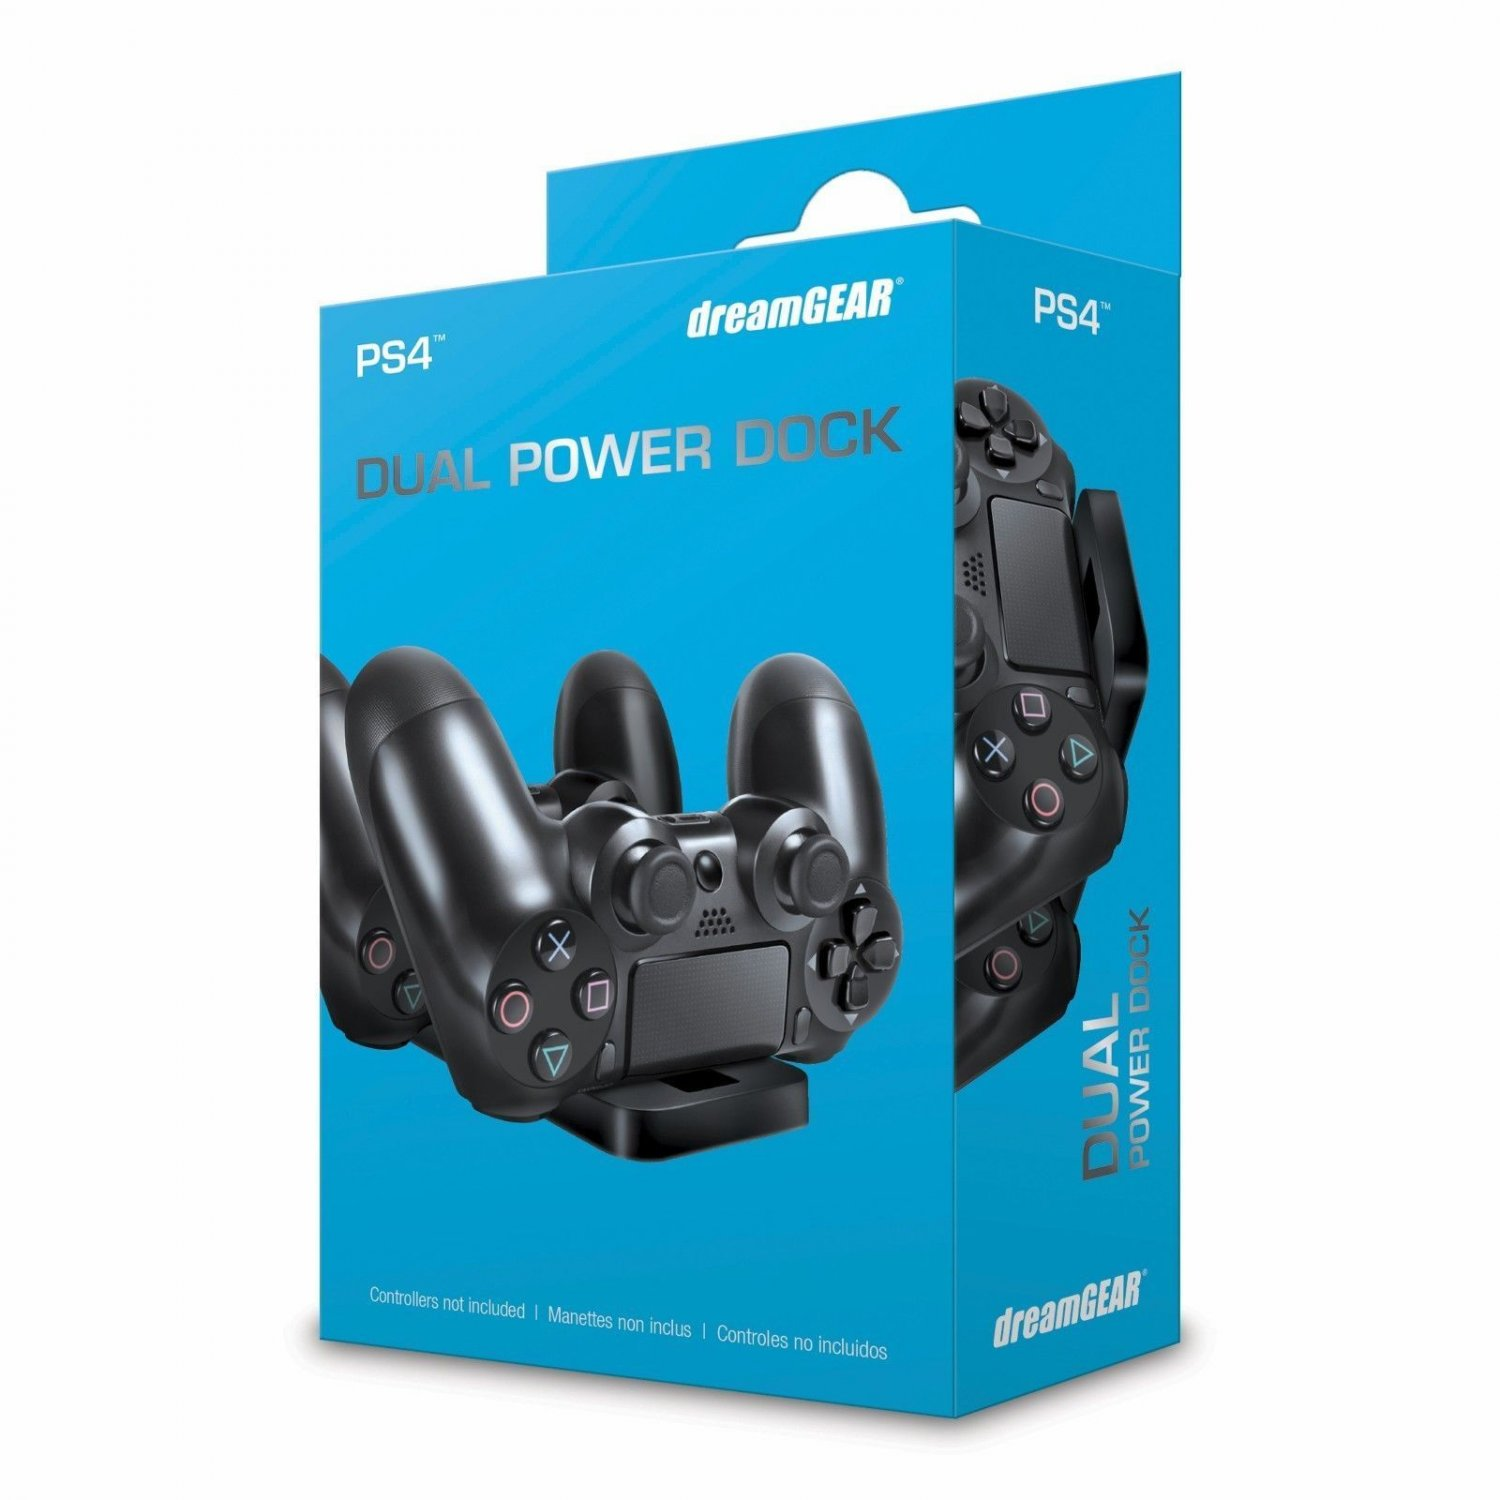 dreamGEAR PlayStation 4 Dual Power Dock Controller Charger PS4 BRAND NEW